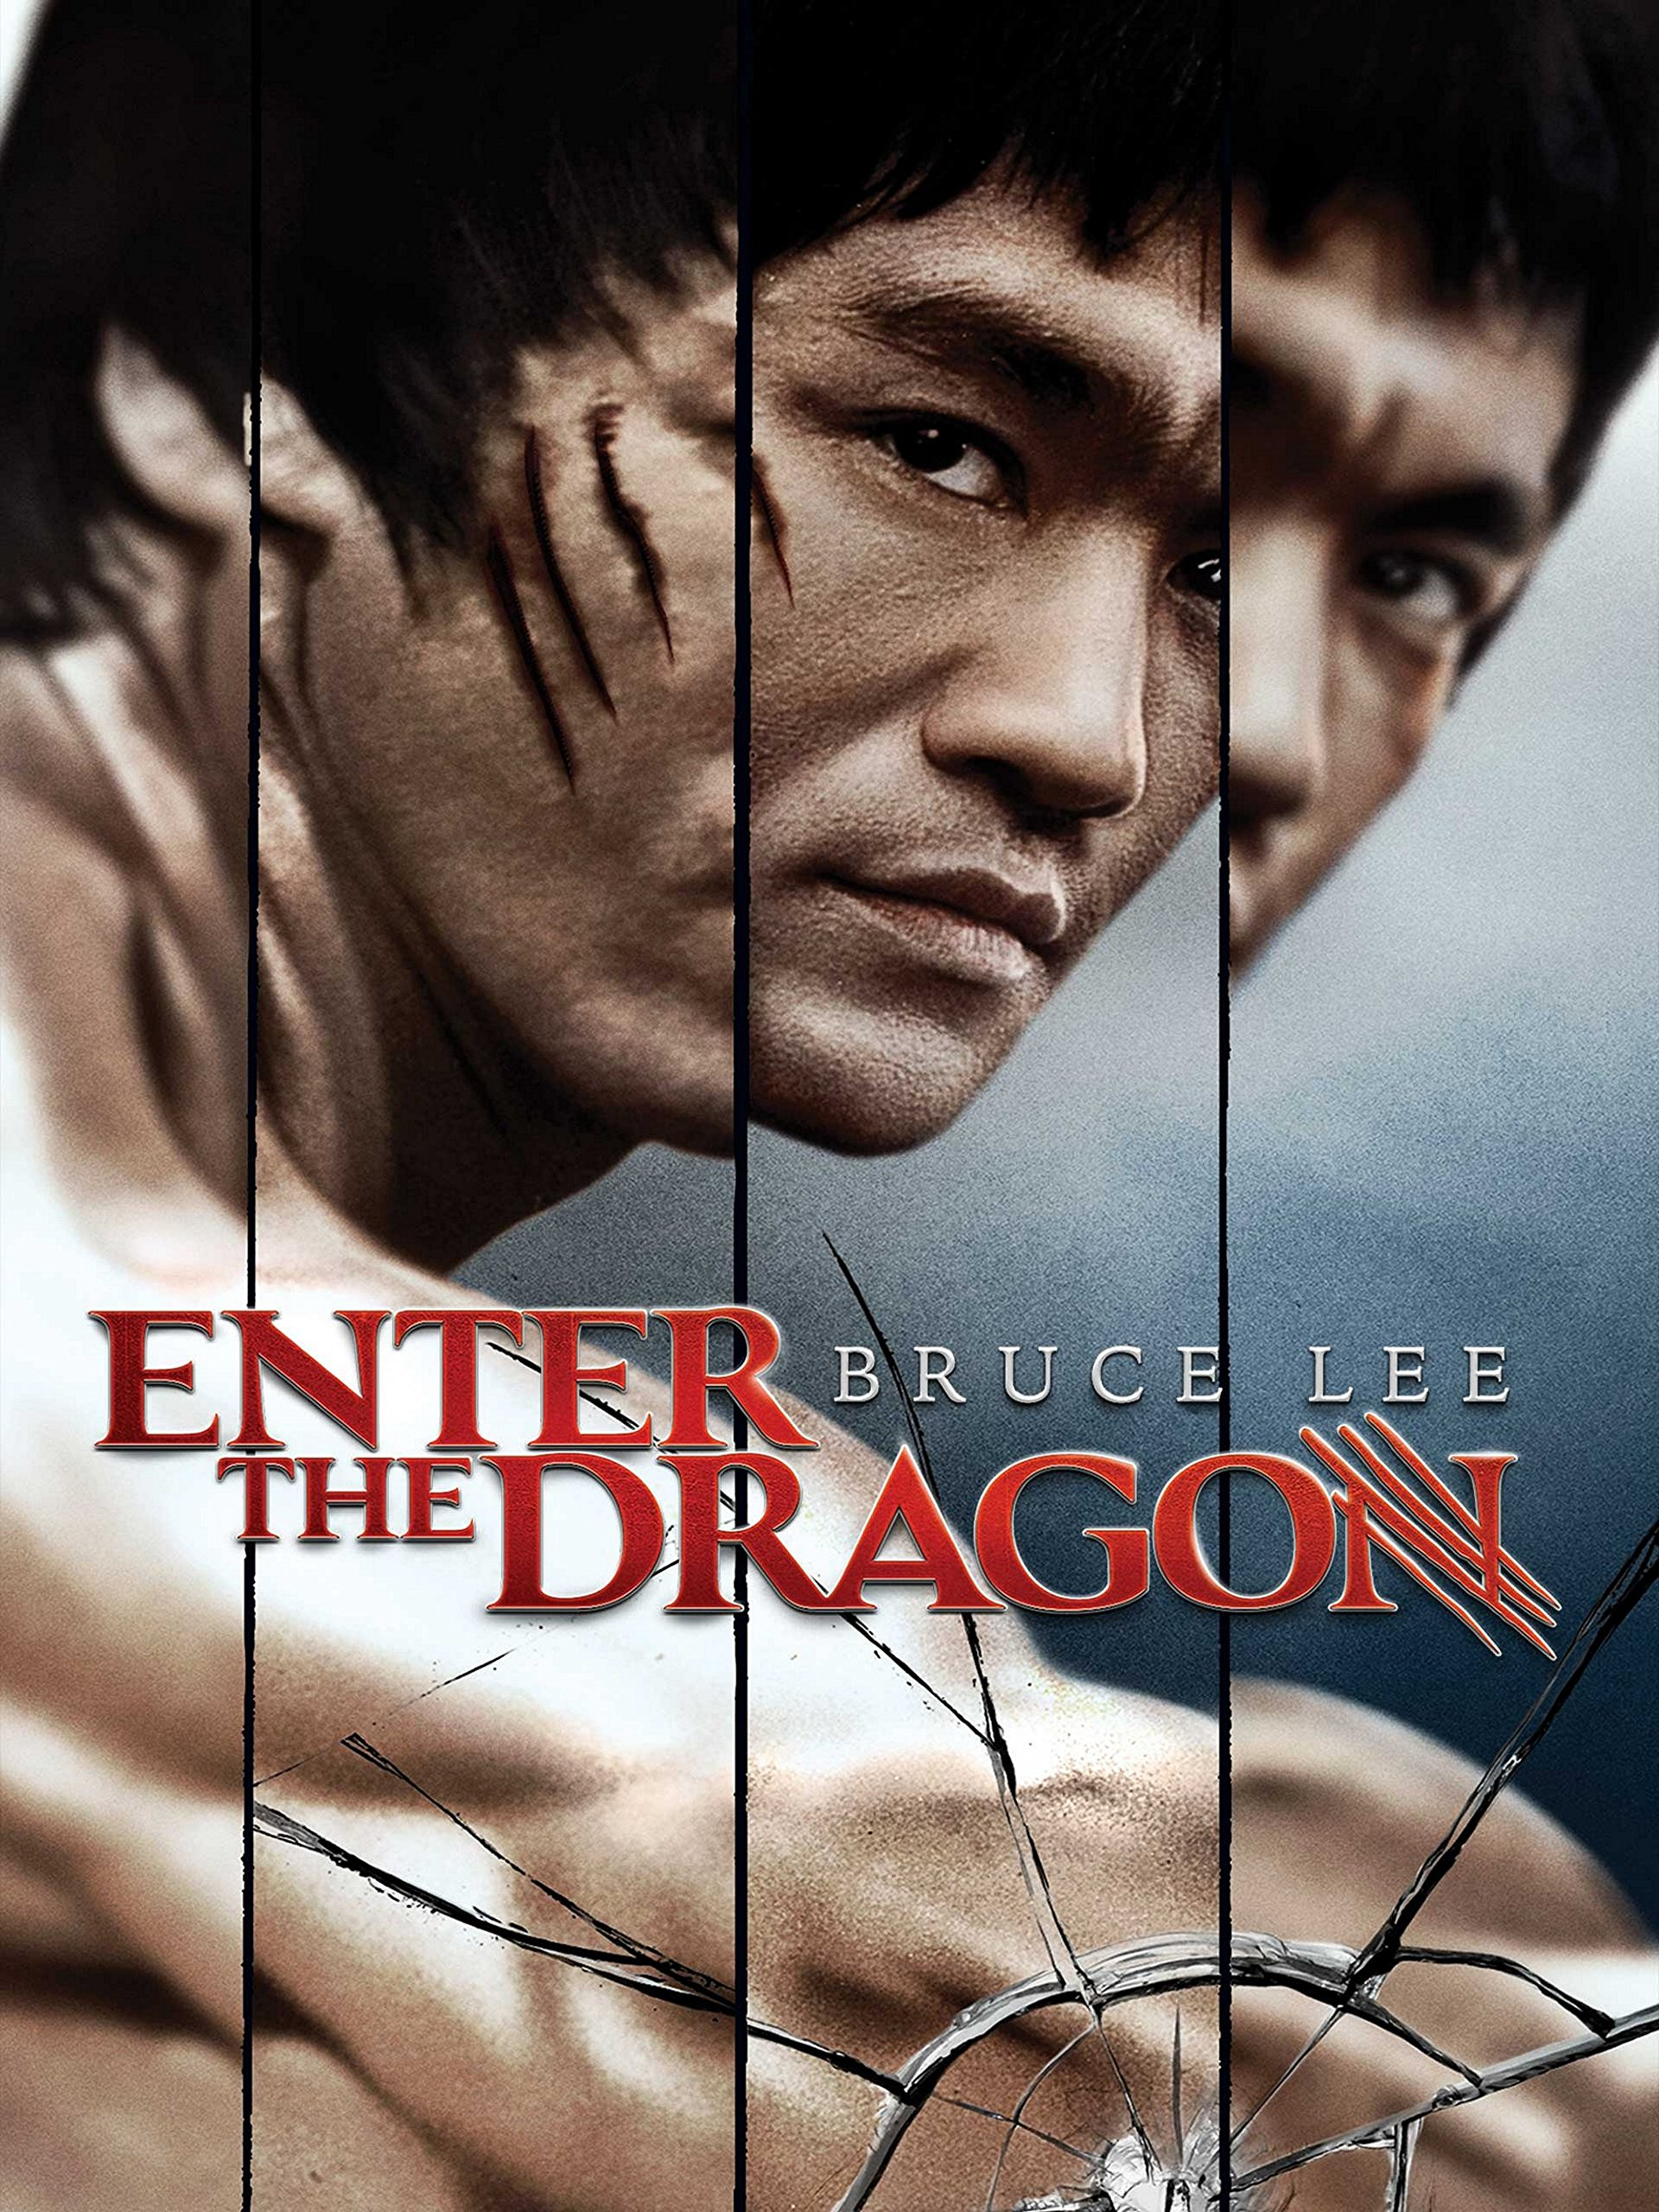 Amazon Co Uk Watch Enter The Dragon Prime Video